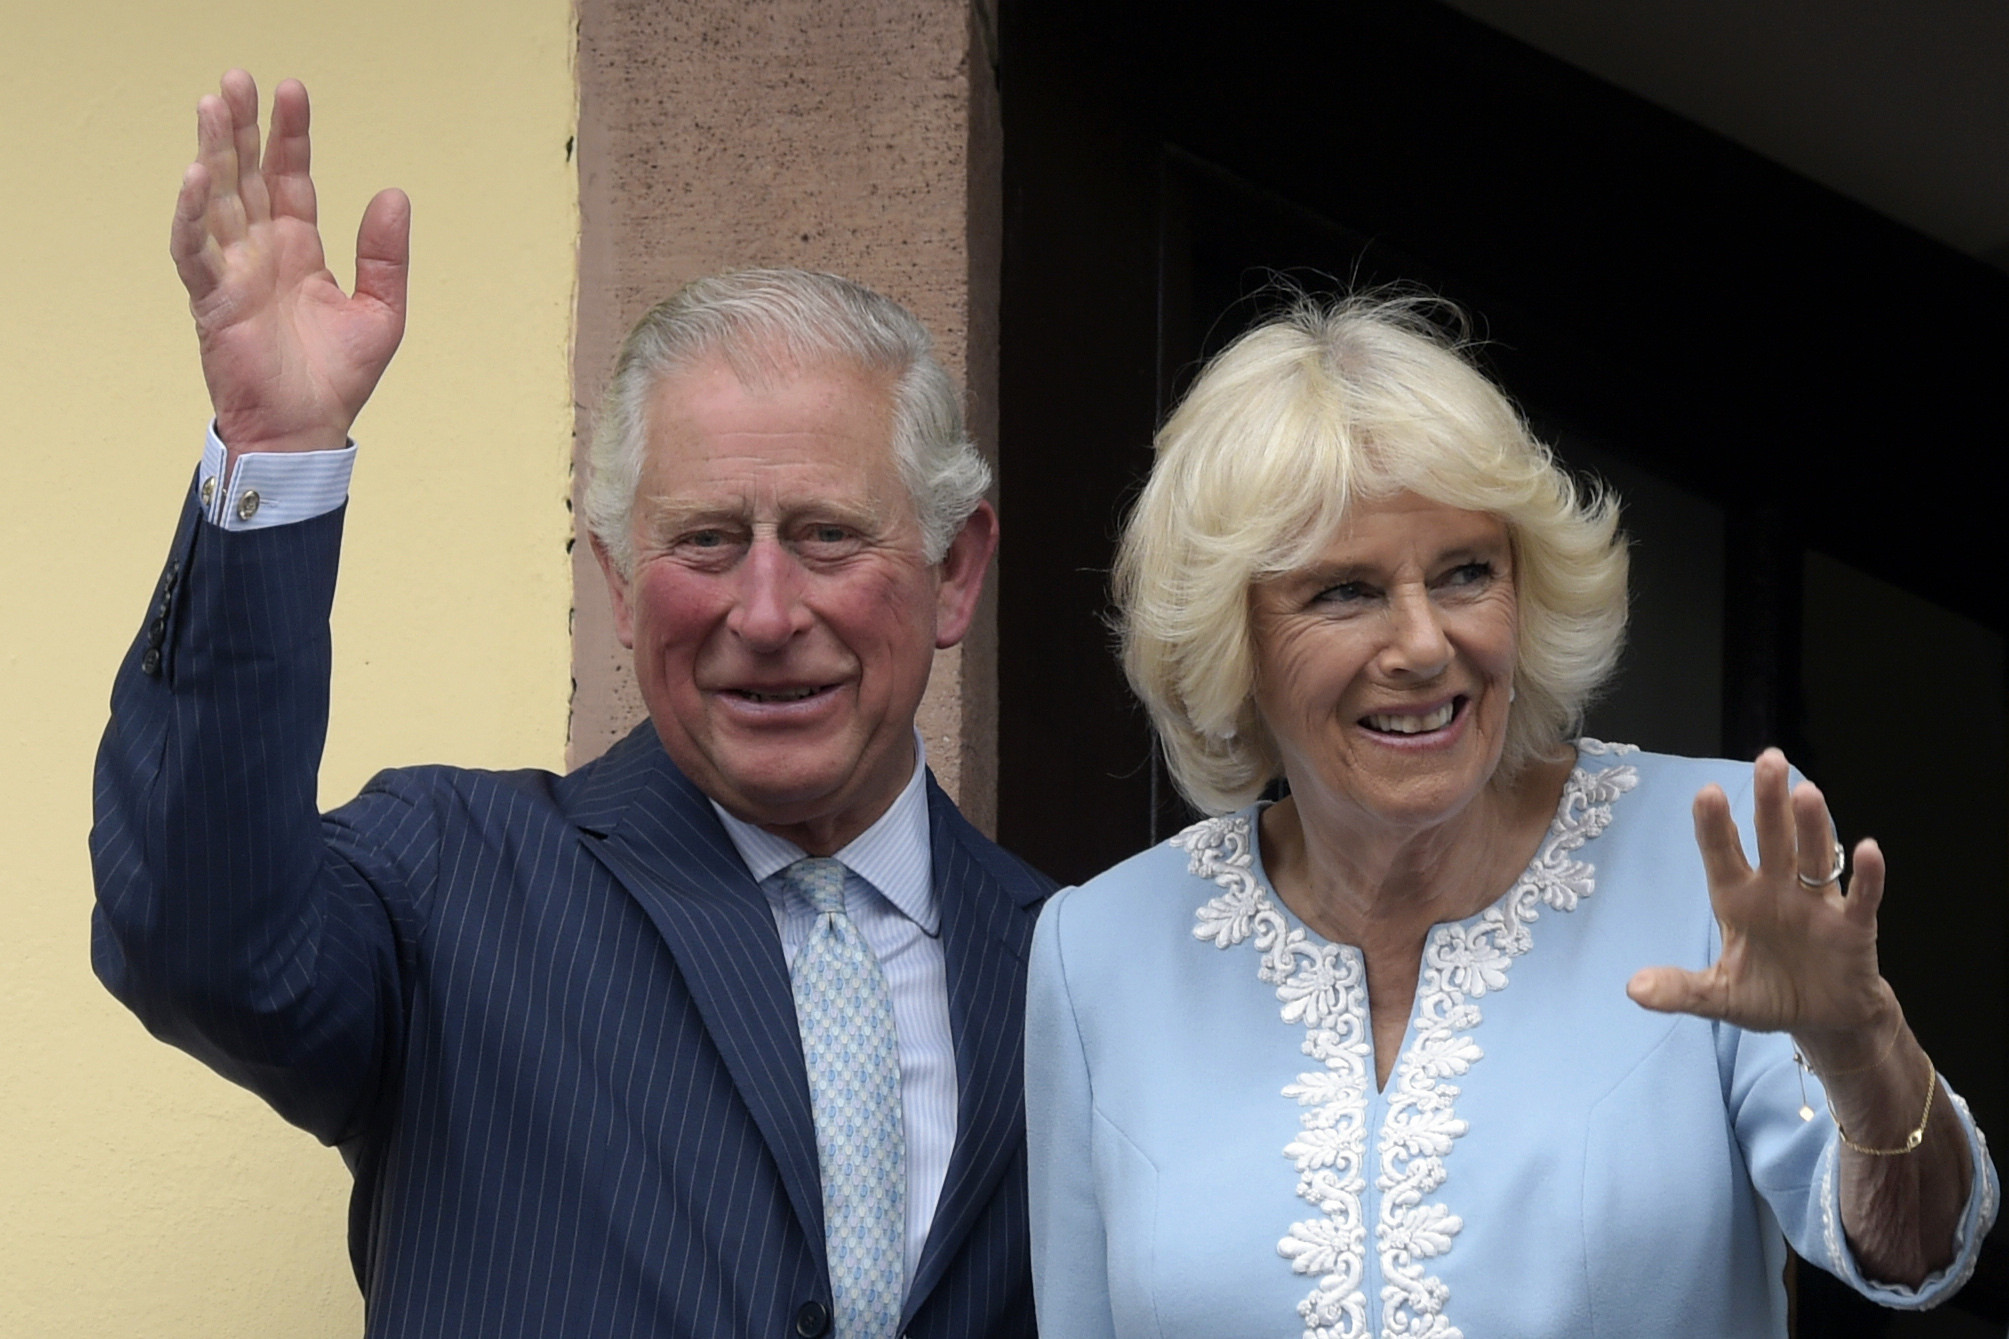 Prince Charles tests positive for coronavirus but 'remains in good health'